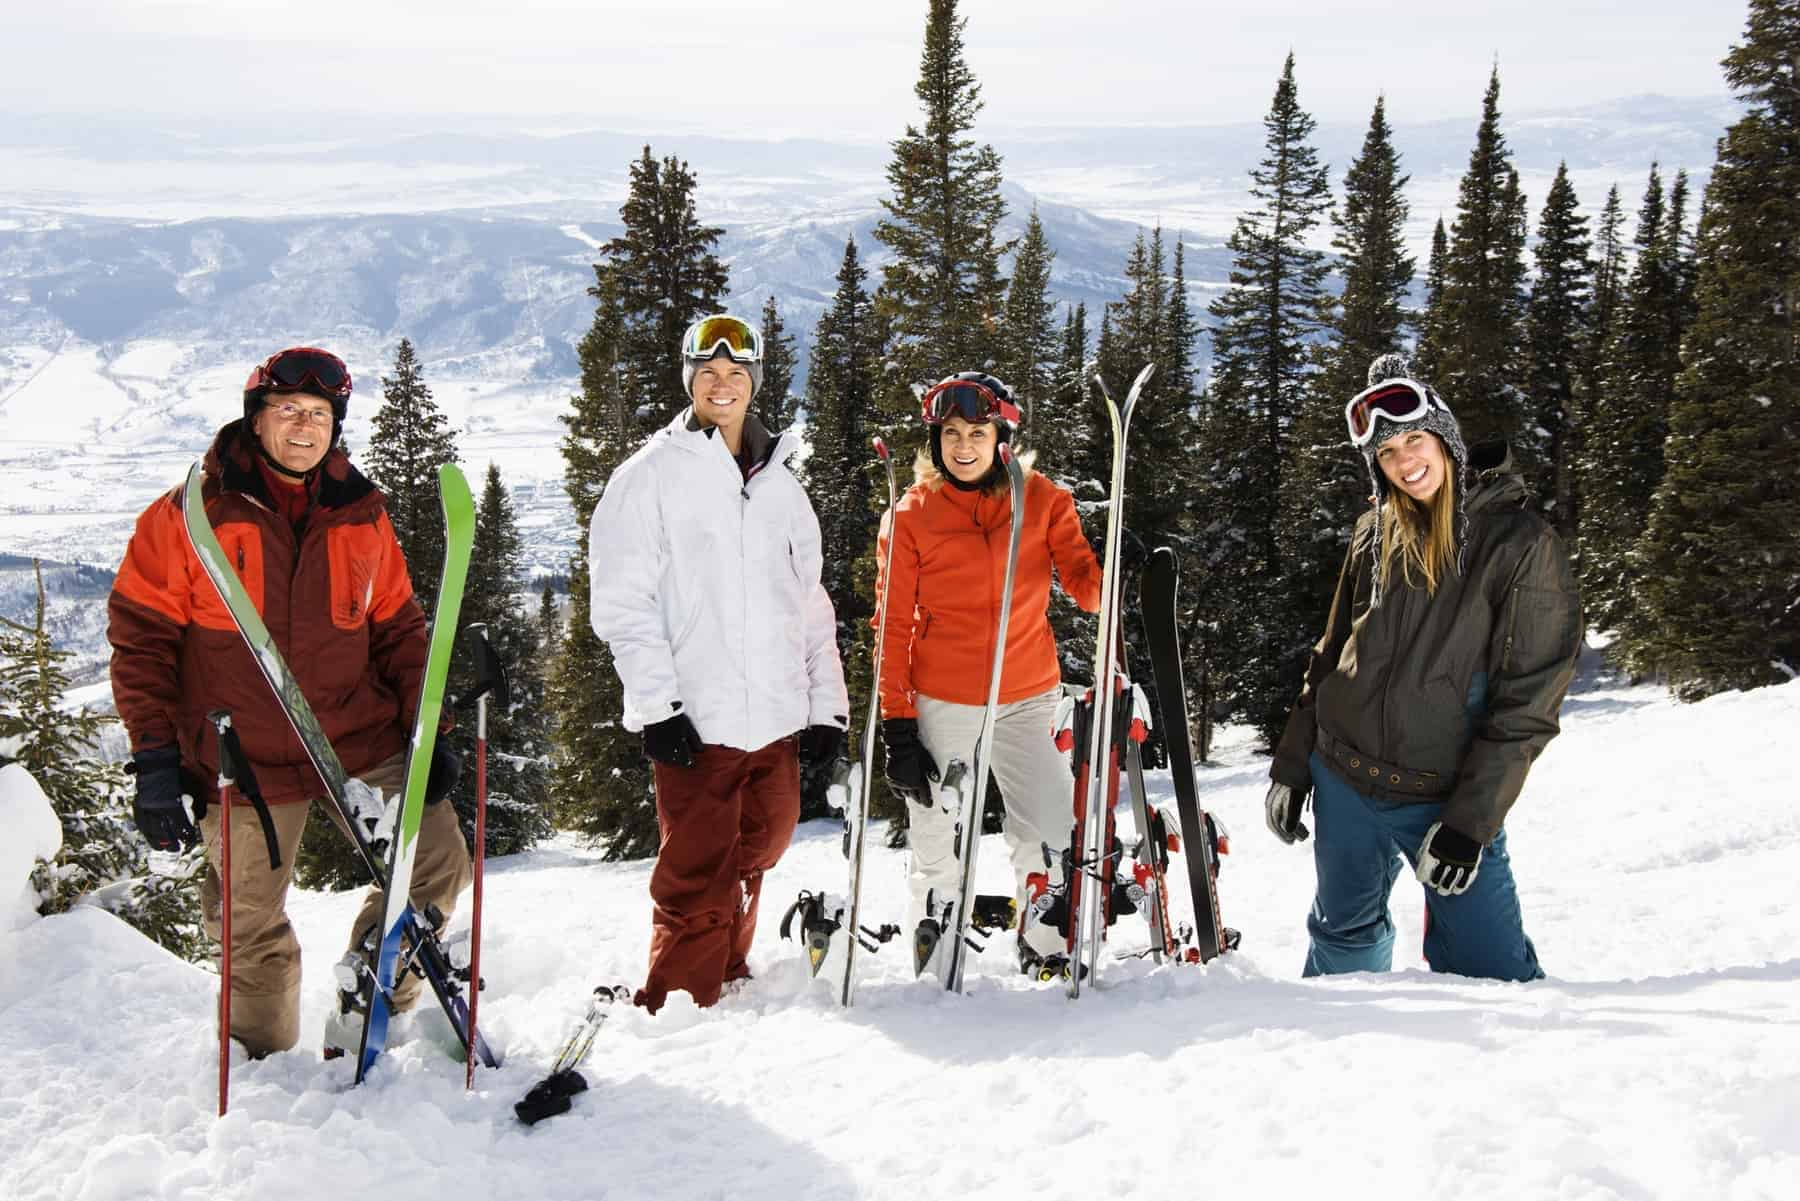 Best Skiresorts USA, Skiers Standing in Snow Smiling